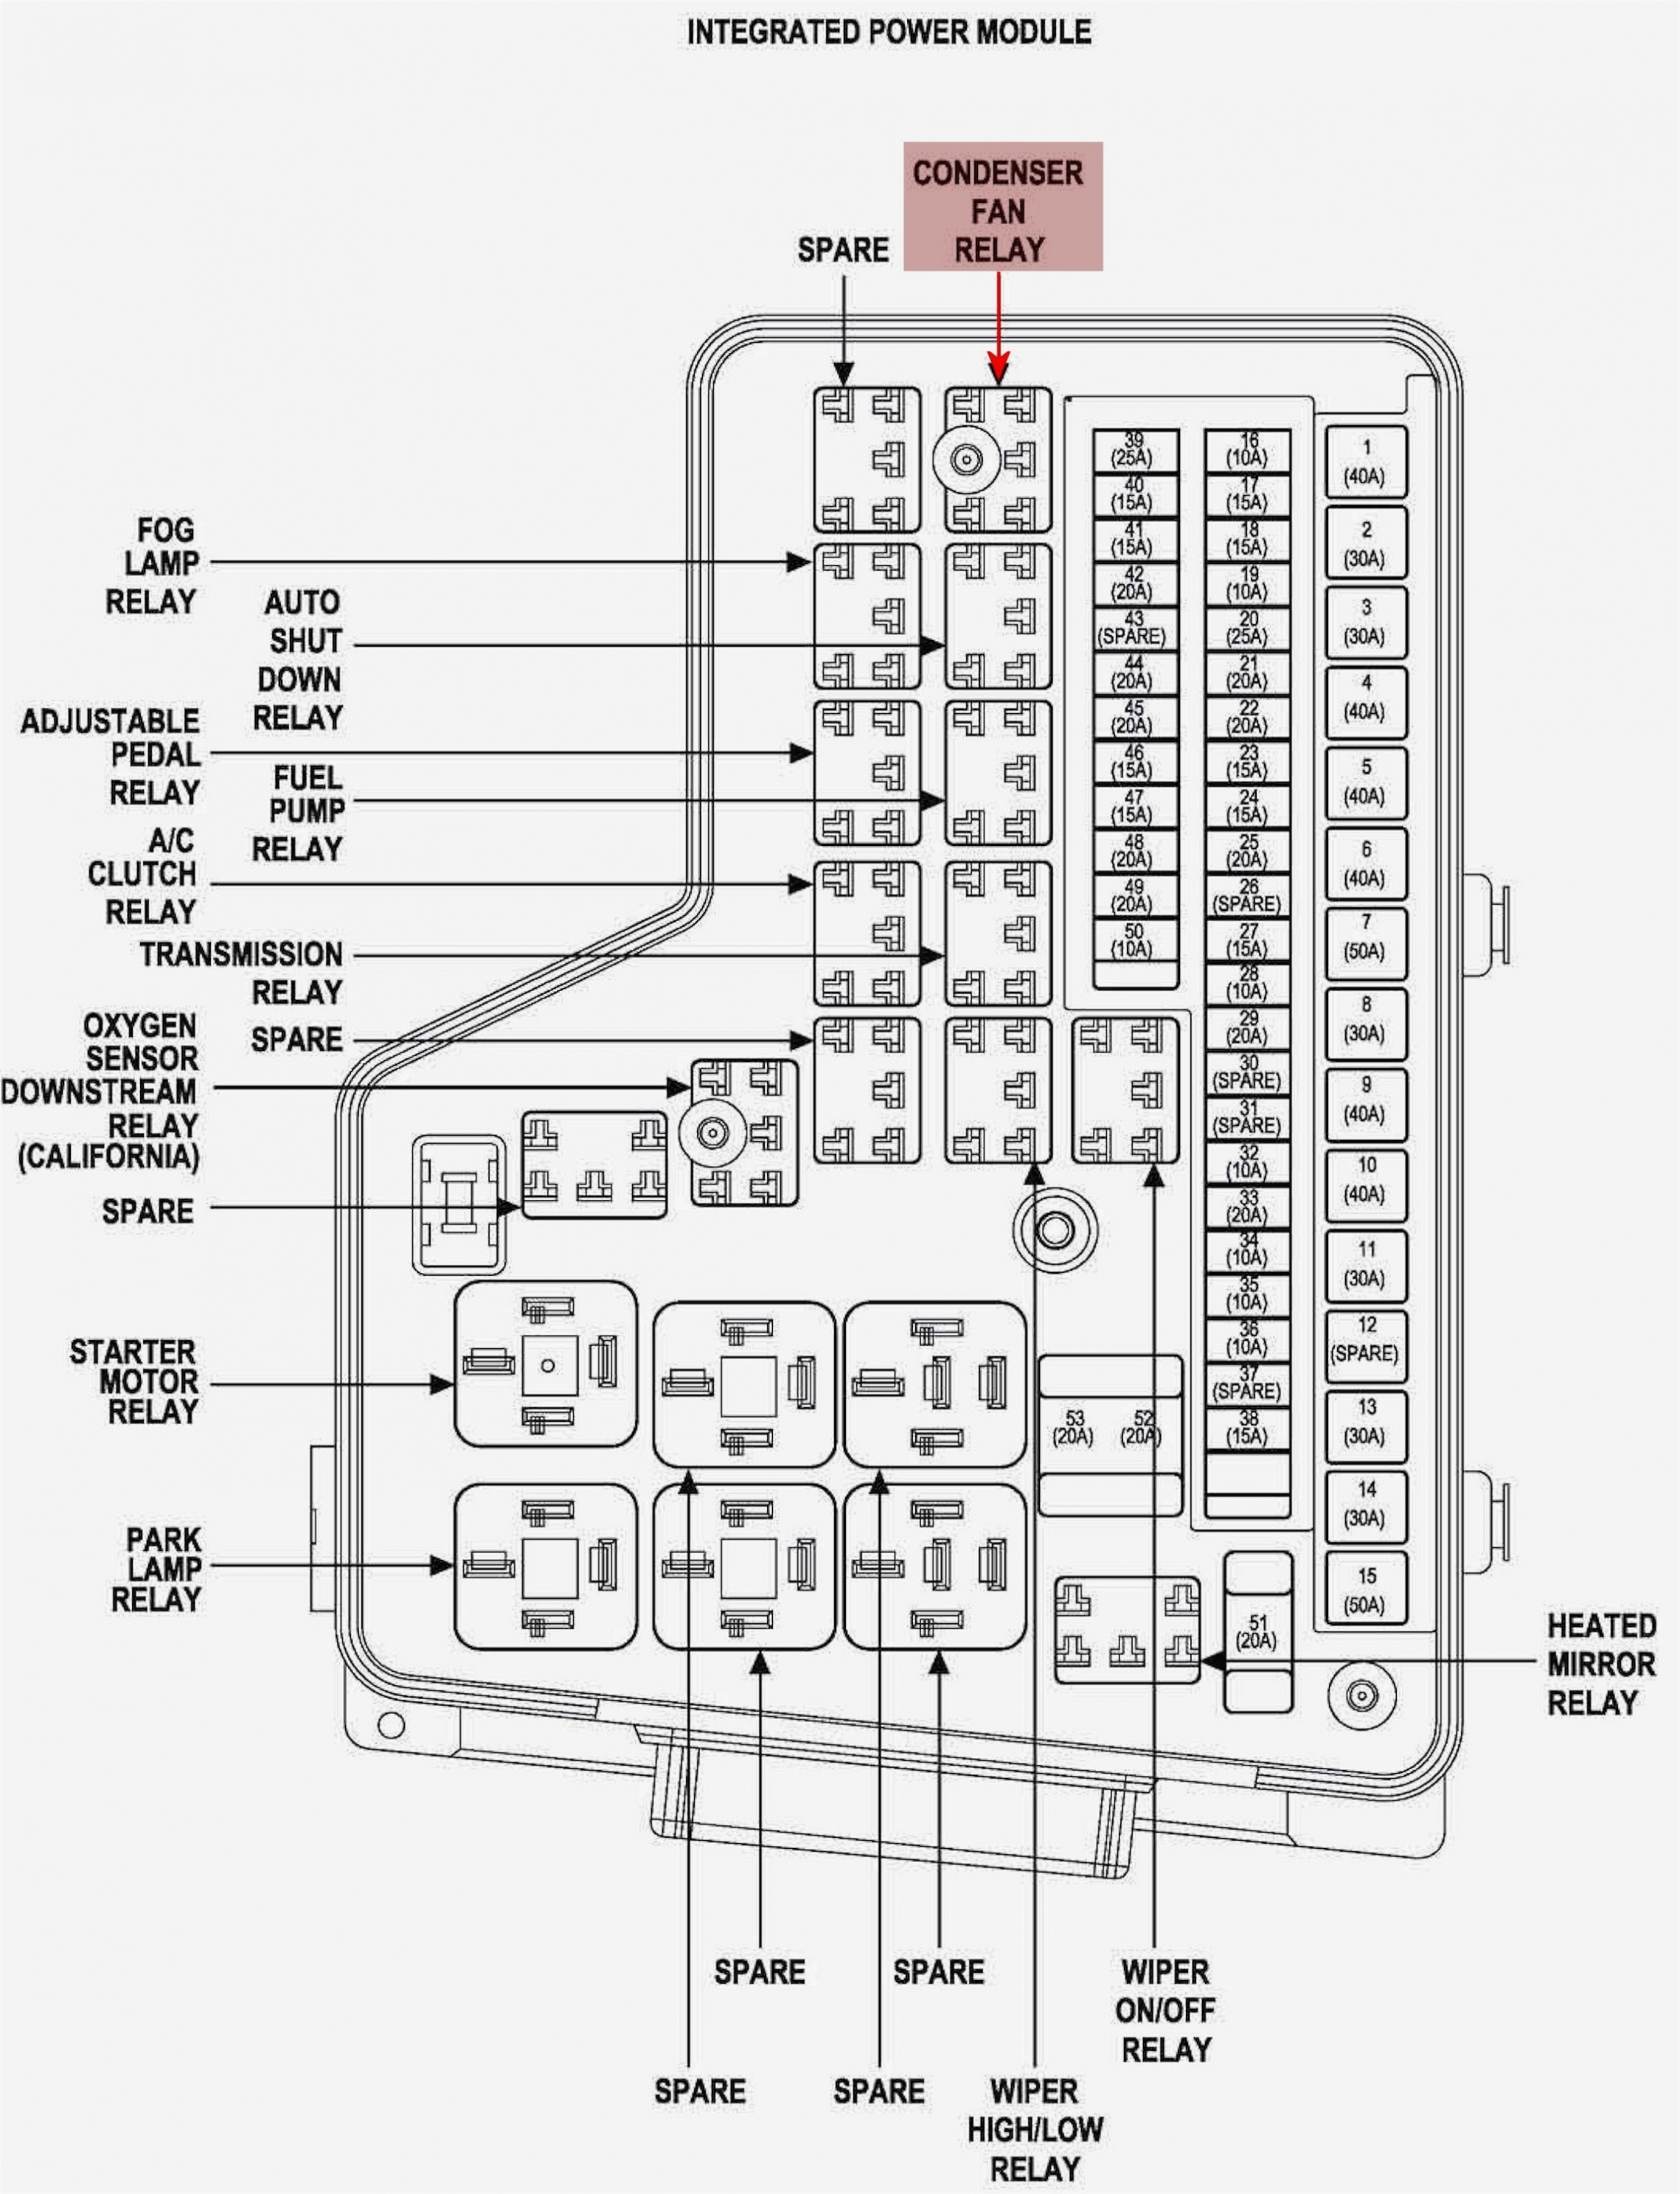 diagram] 2009 1500 dodge ram headlight fuse box diagram full version hd  quality box diagram - cordsuspension.pftc.fr  pftc